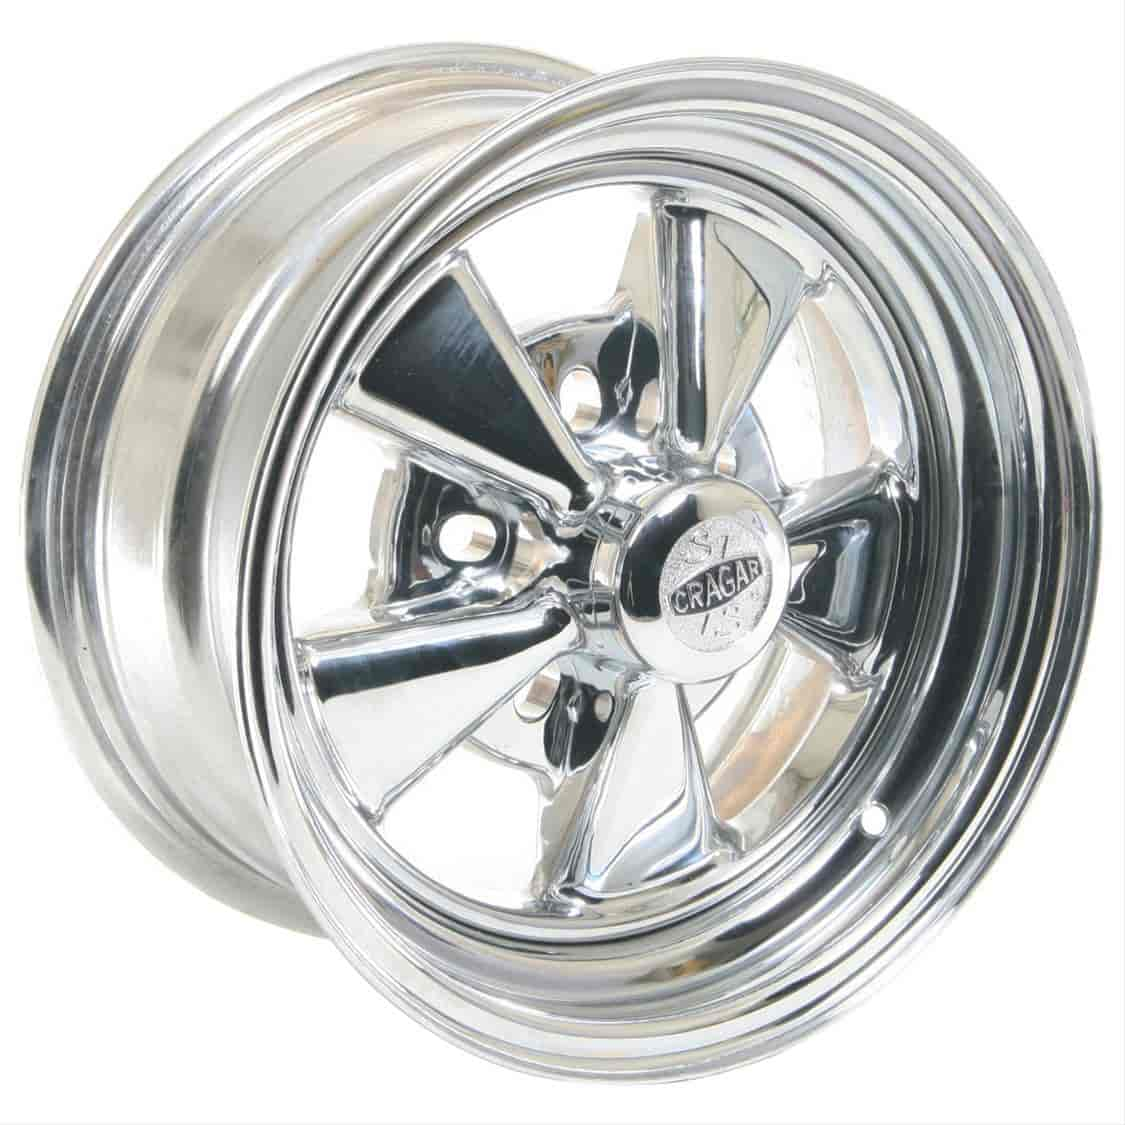 Cragar 61814 - Cragar 08/61 Series S/S Super Sport Wheels